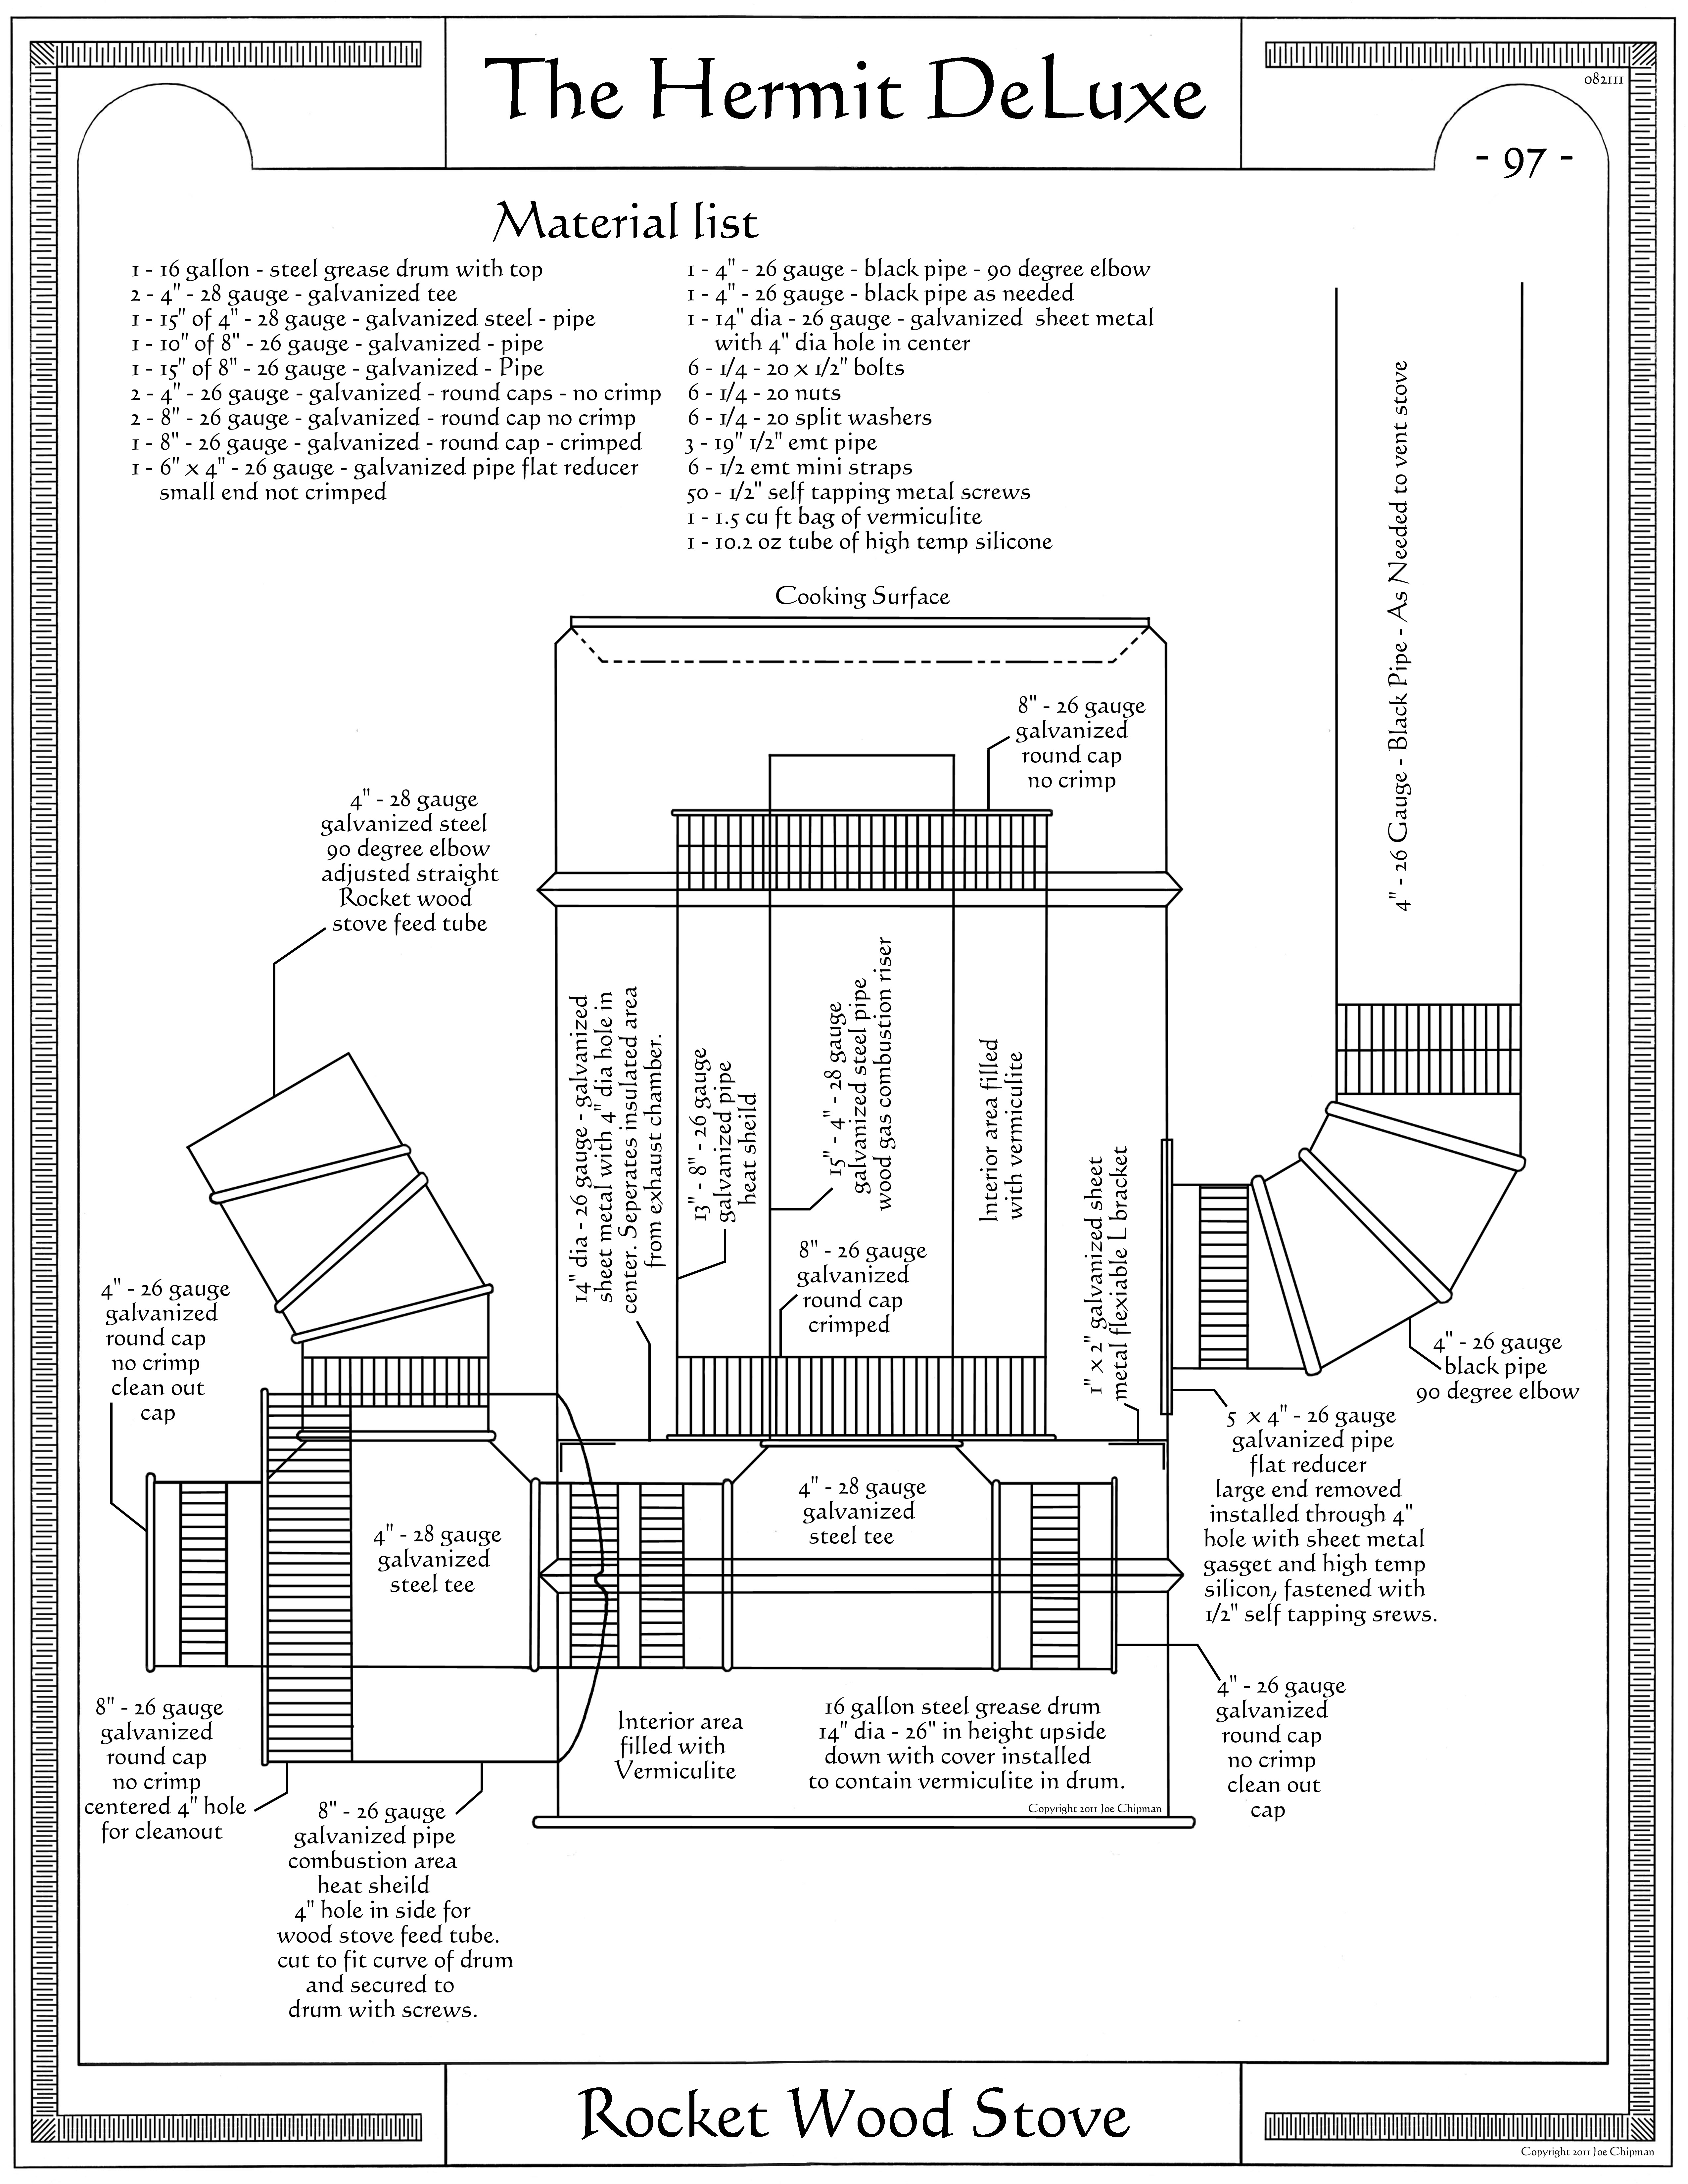 Rocket wood stove wood burning stoves forum at permies for Rocket stove design plans